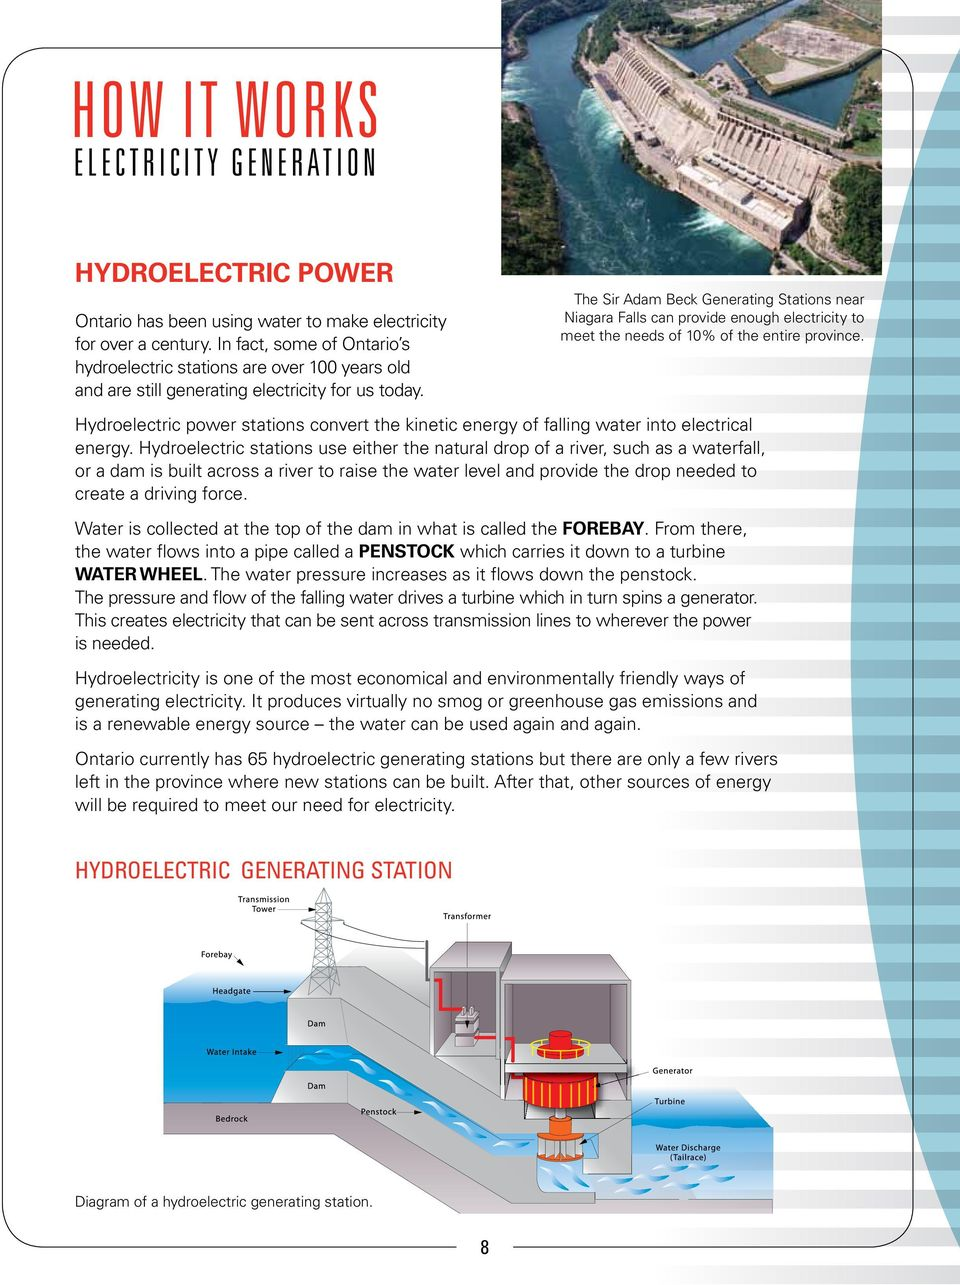 How It Works Electricity Generation Pdf Generating The Sir Adam Beck Stations Near Niagara Falls Can Provide Enough To Meet